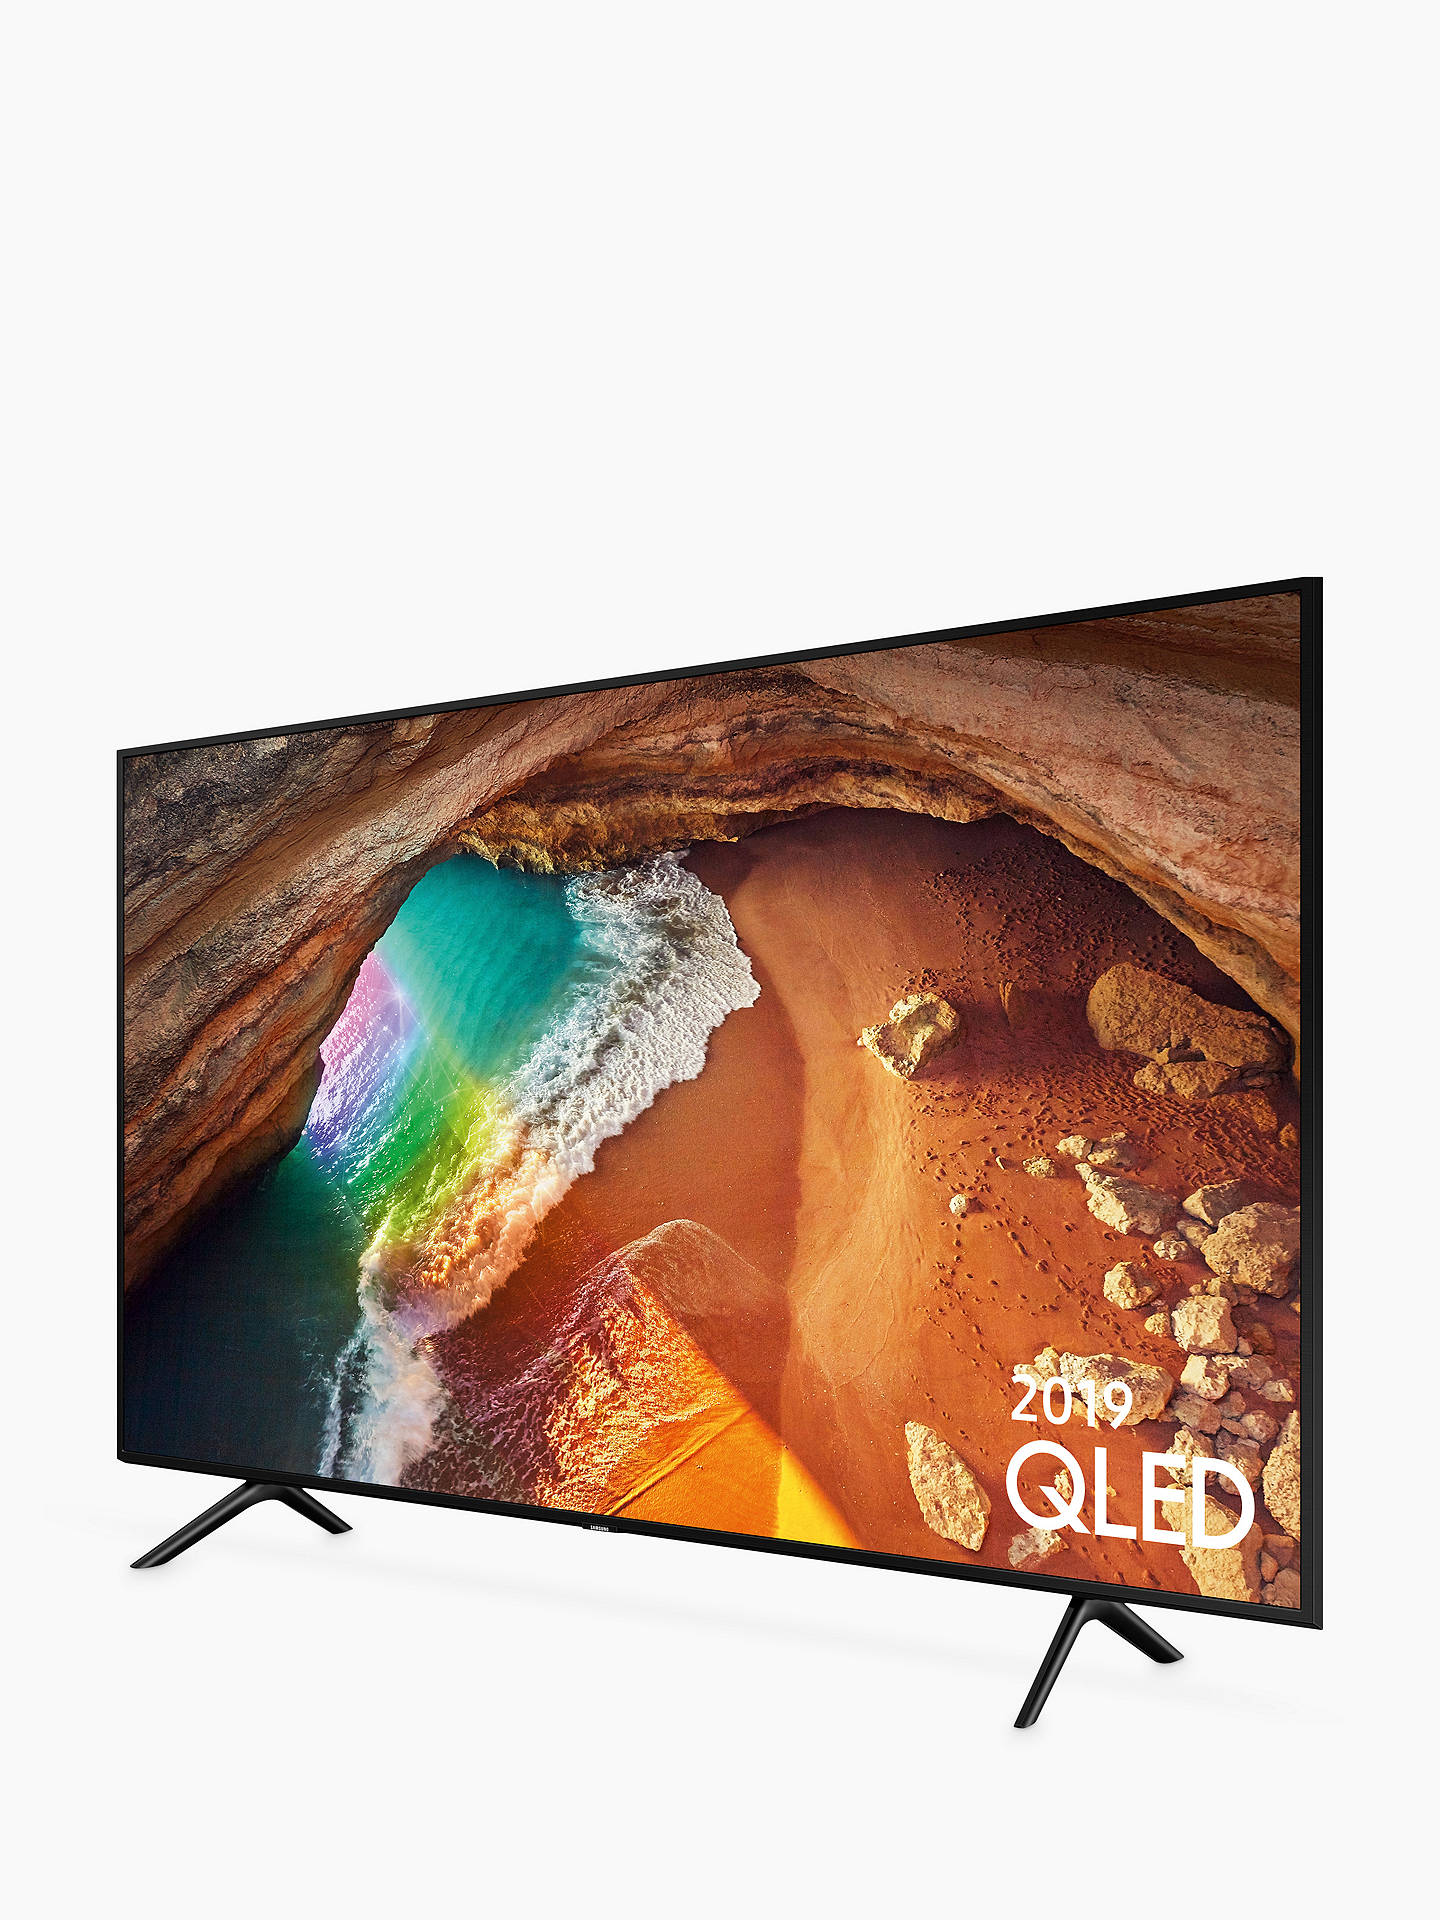 Samsung QE49Q60R (2019) QLED HDR 4K Ultra HD Smart TV, 49